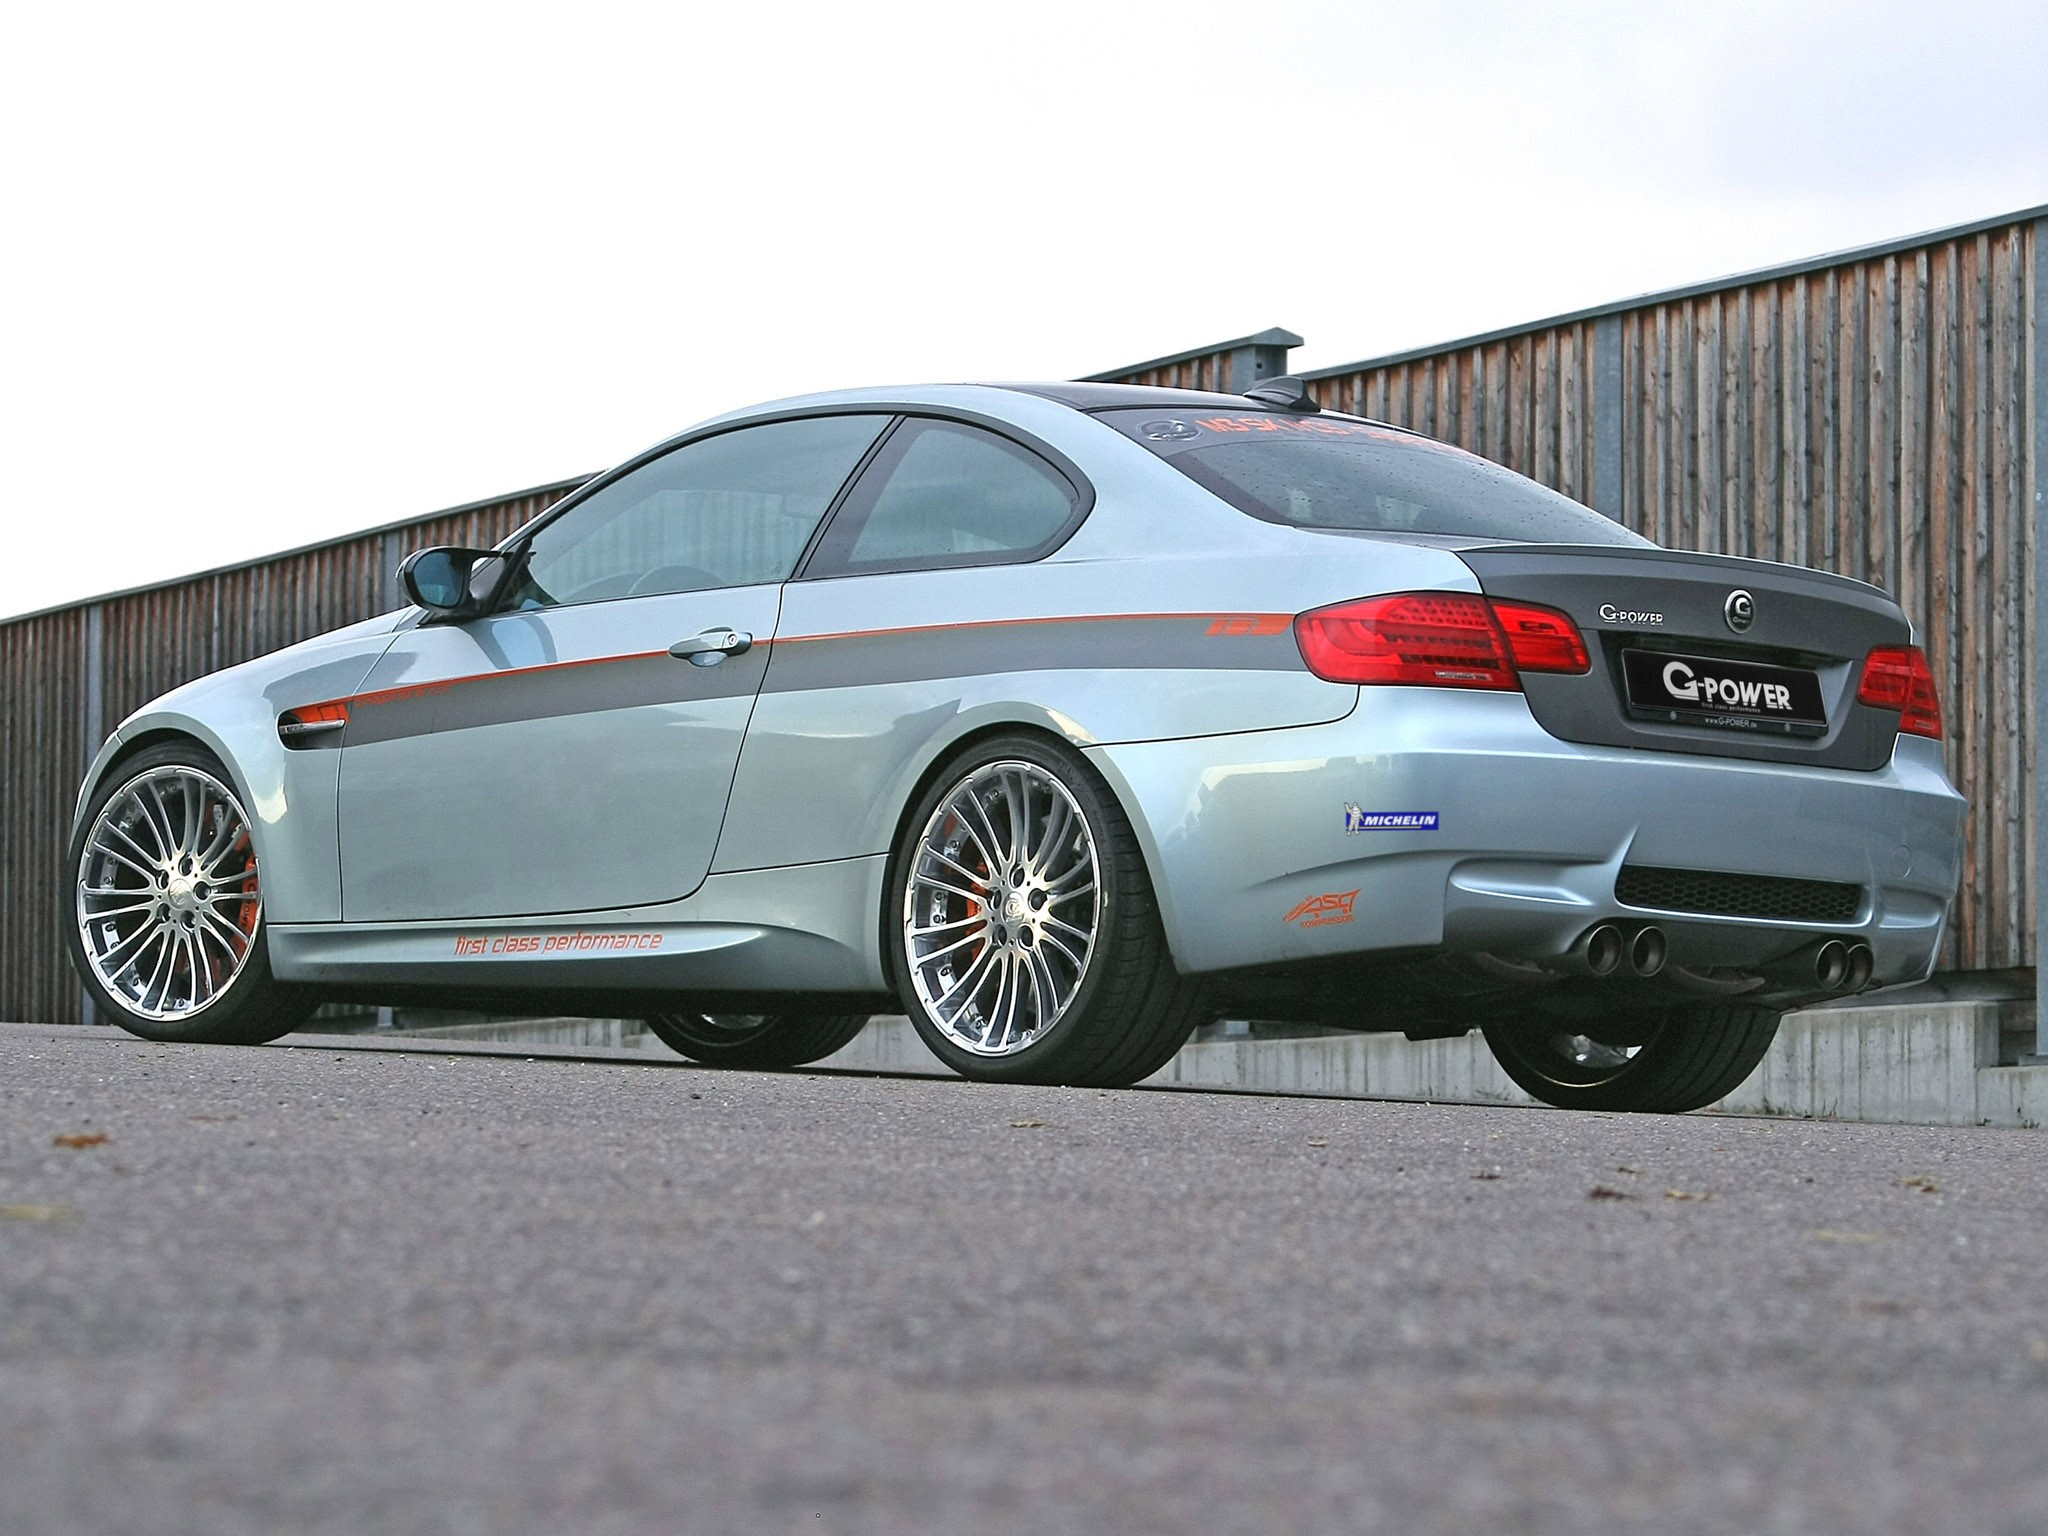 2014 G-Power - Bmw M3 Hurricane 337 Edition E92